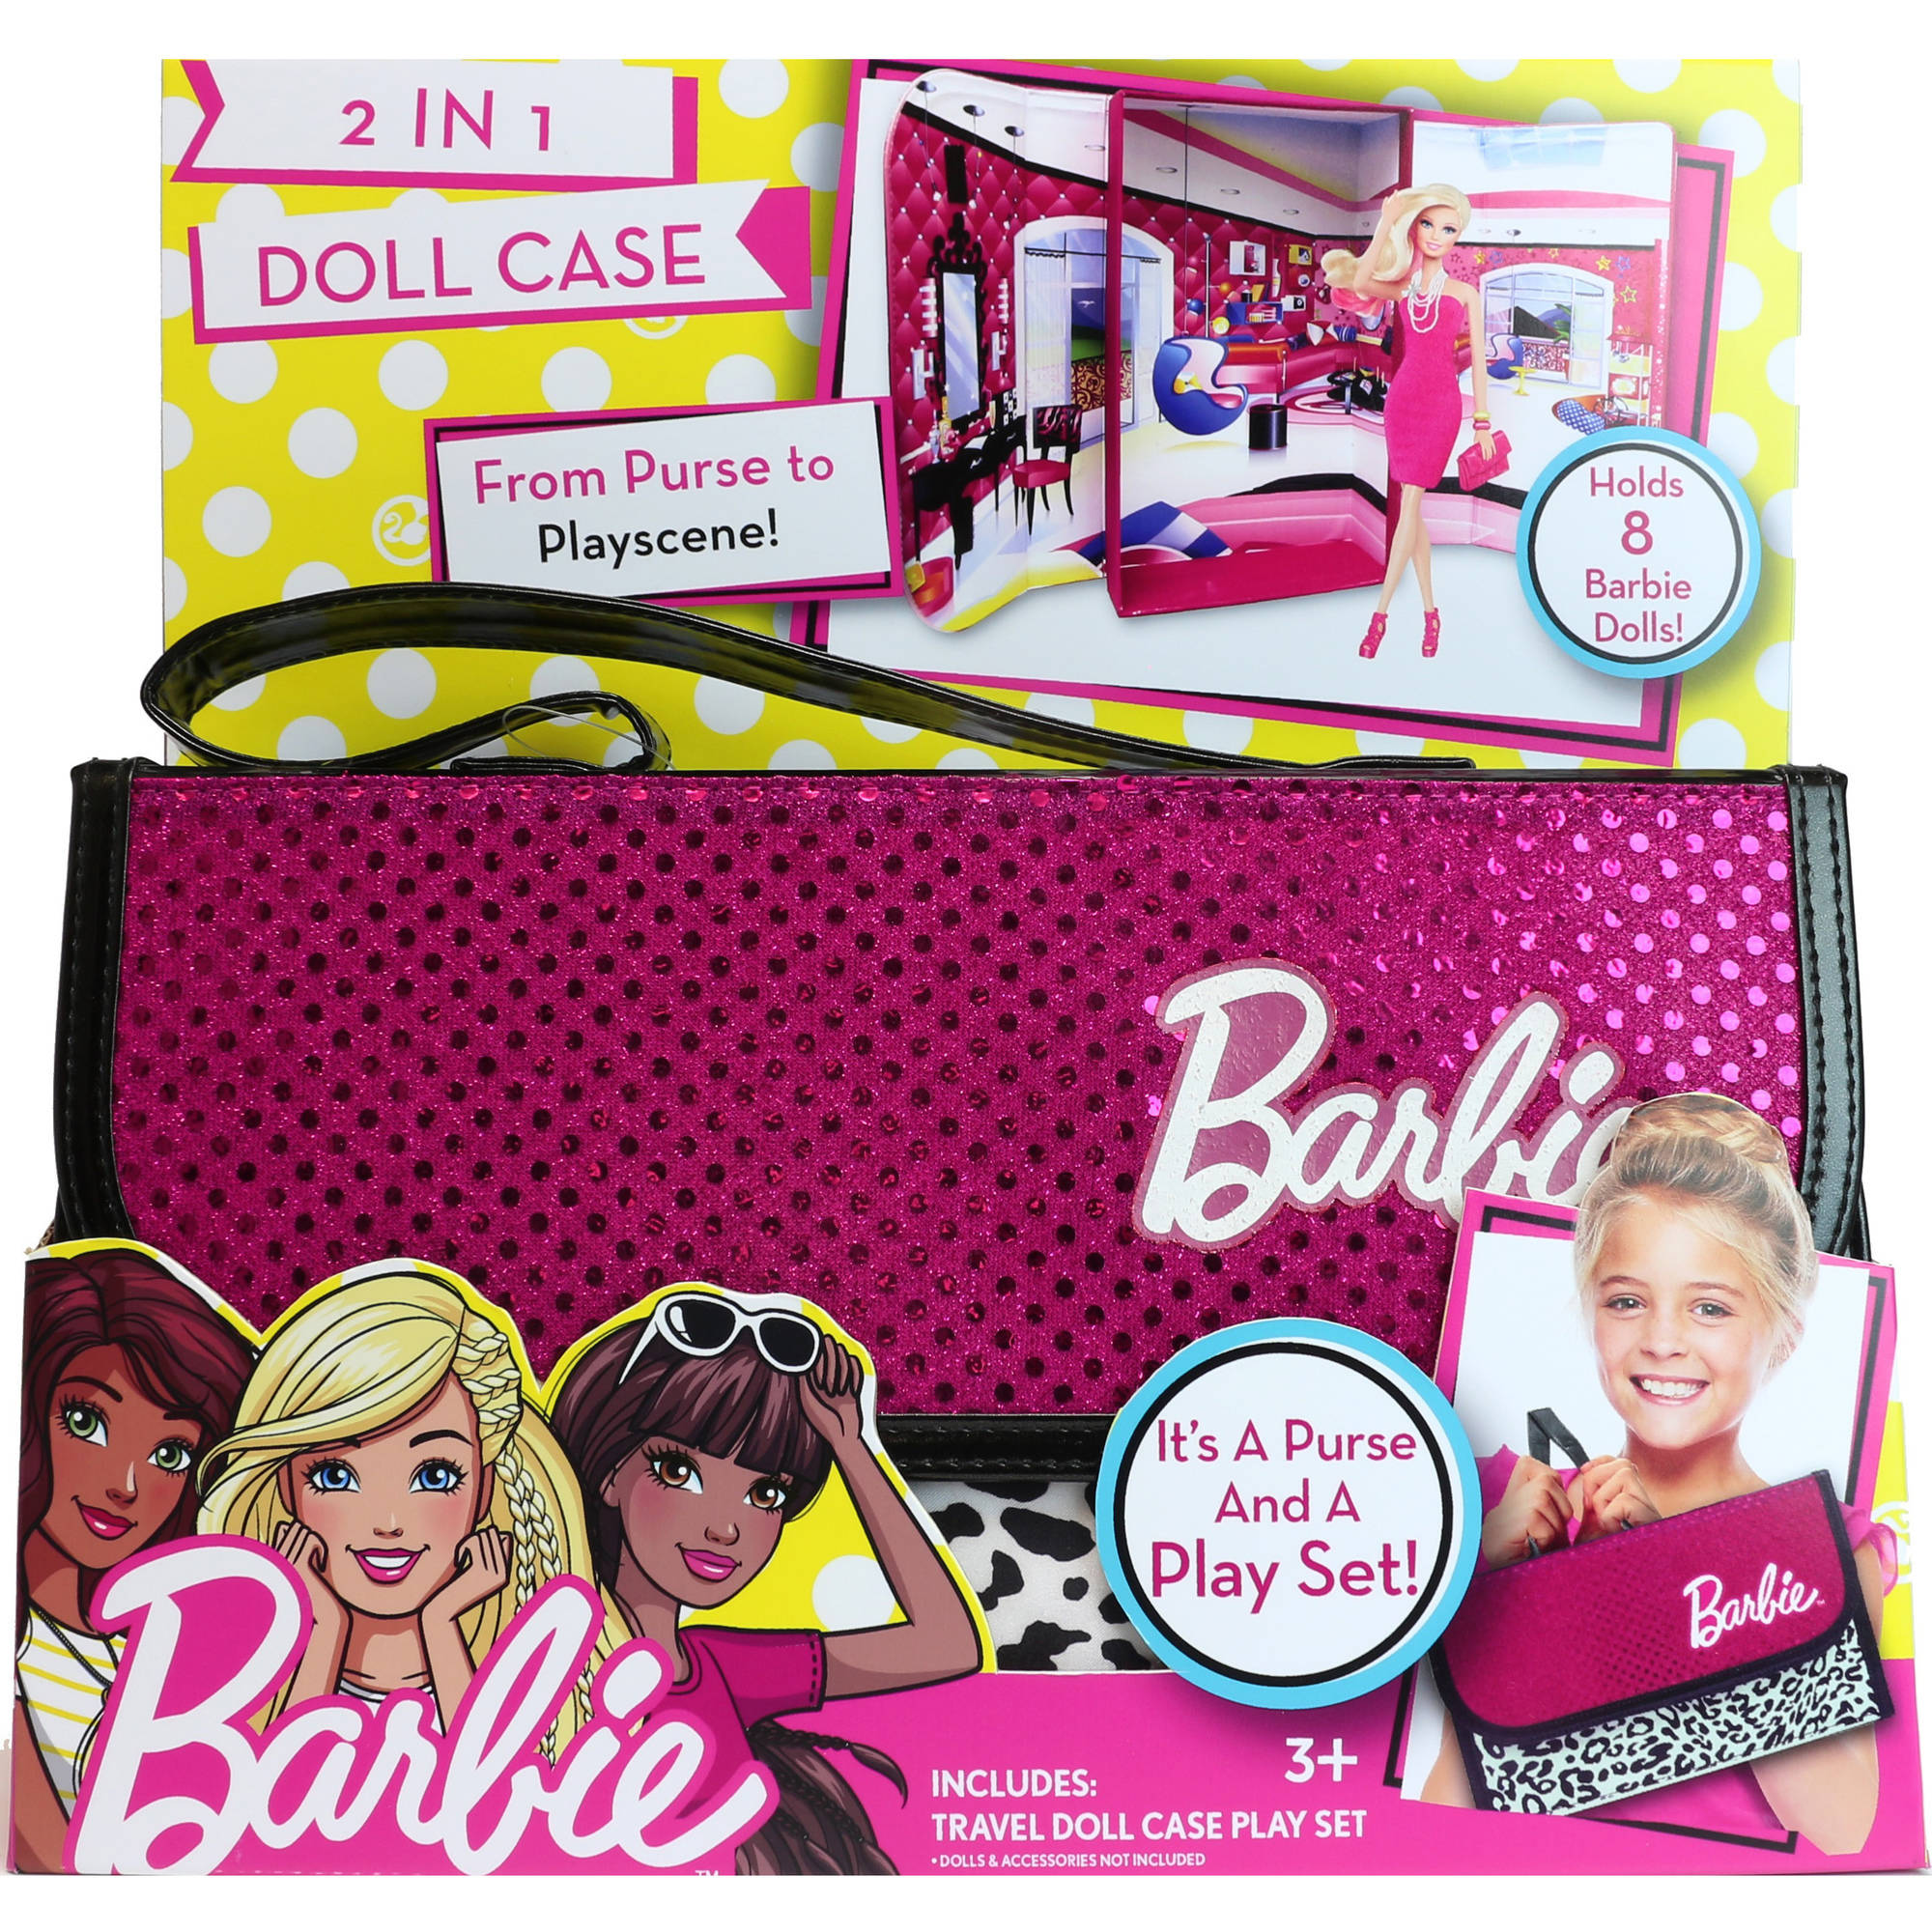 Barbie 2 In 1 Doll Case by Tara Toy Corporation